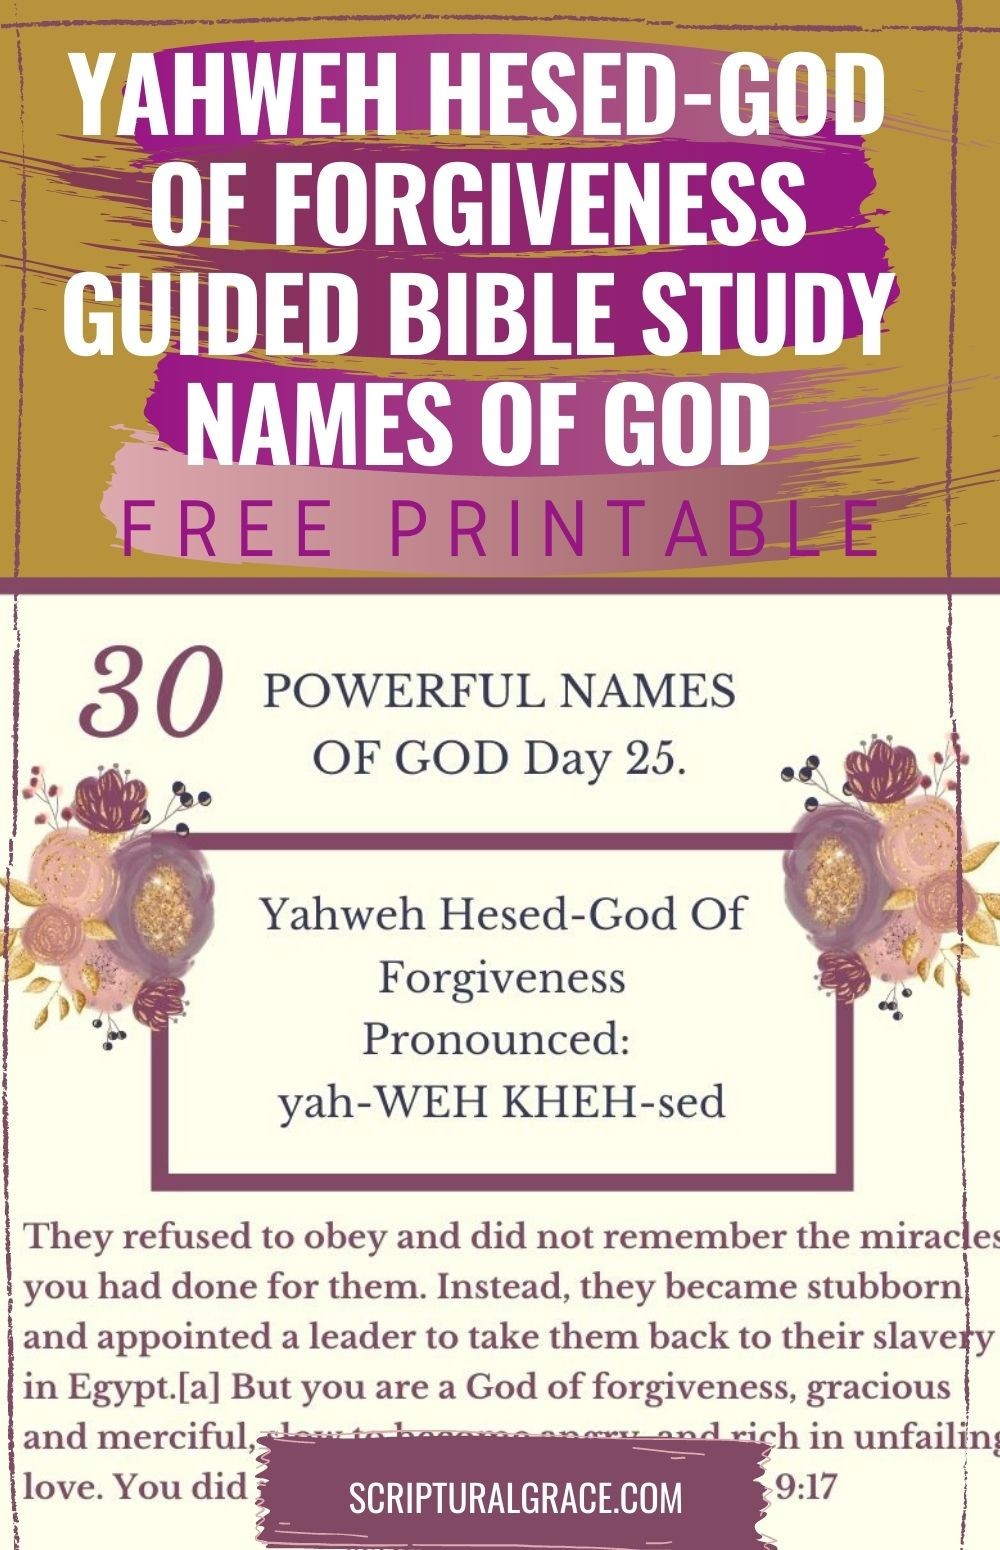 yAHWEH hASED NAMES OF GOD FREE PRINTABLE AND BIBLE STUDY